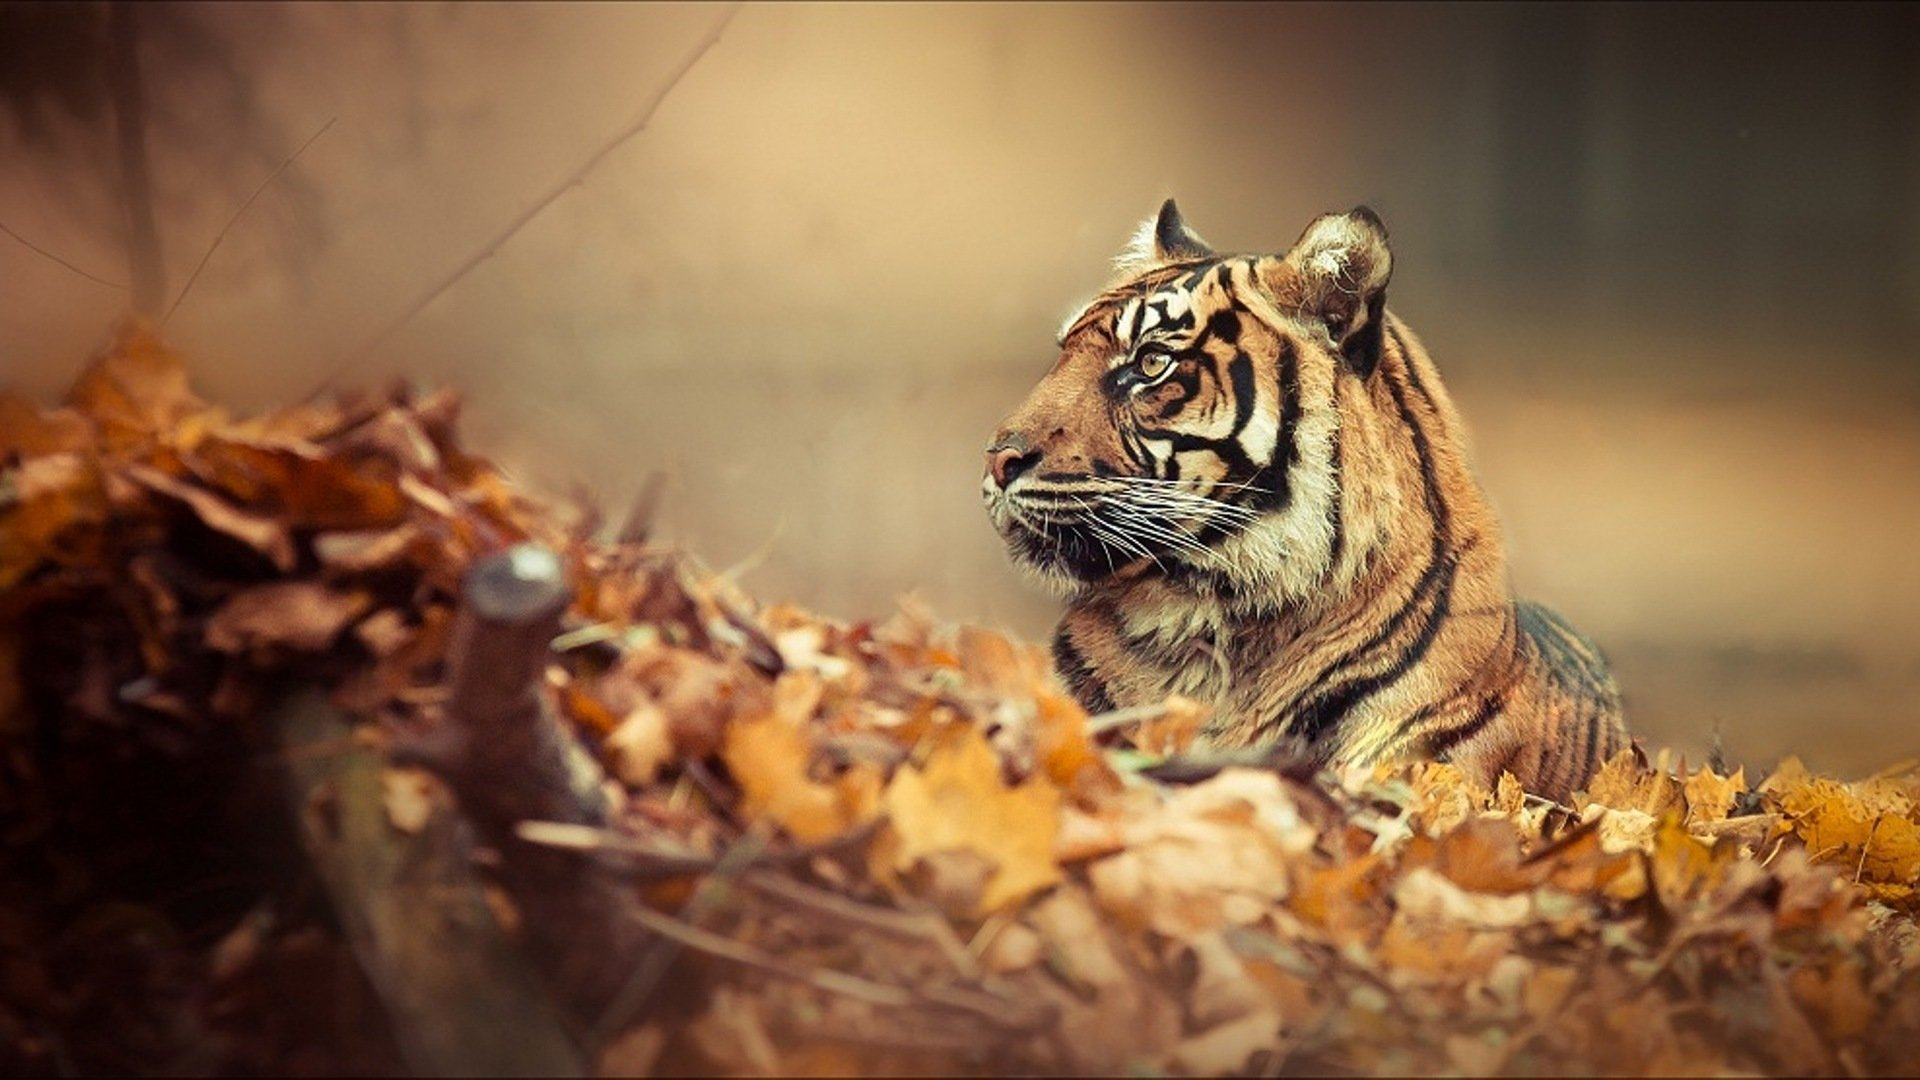 Download Full Hd 1080p Tiger Pc Wallpaper Id 115627 For Free